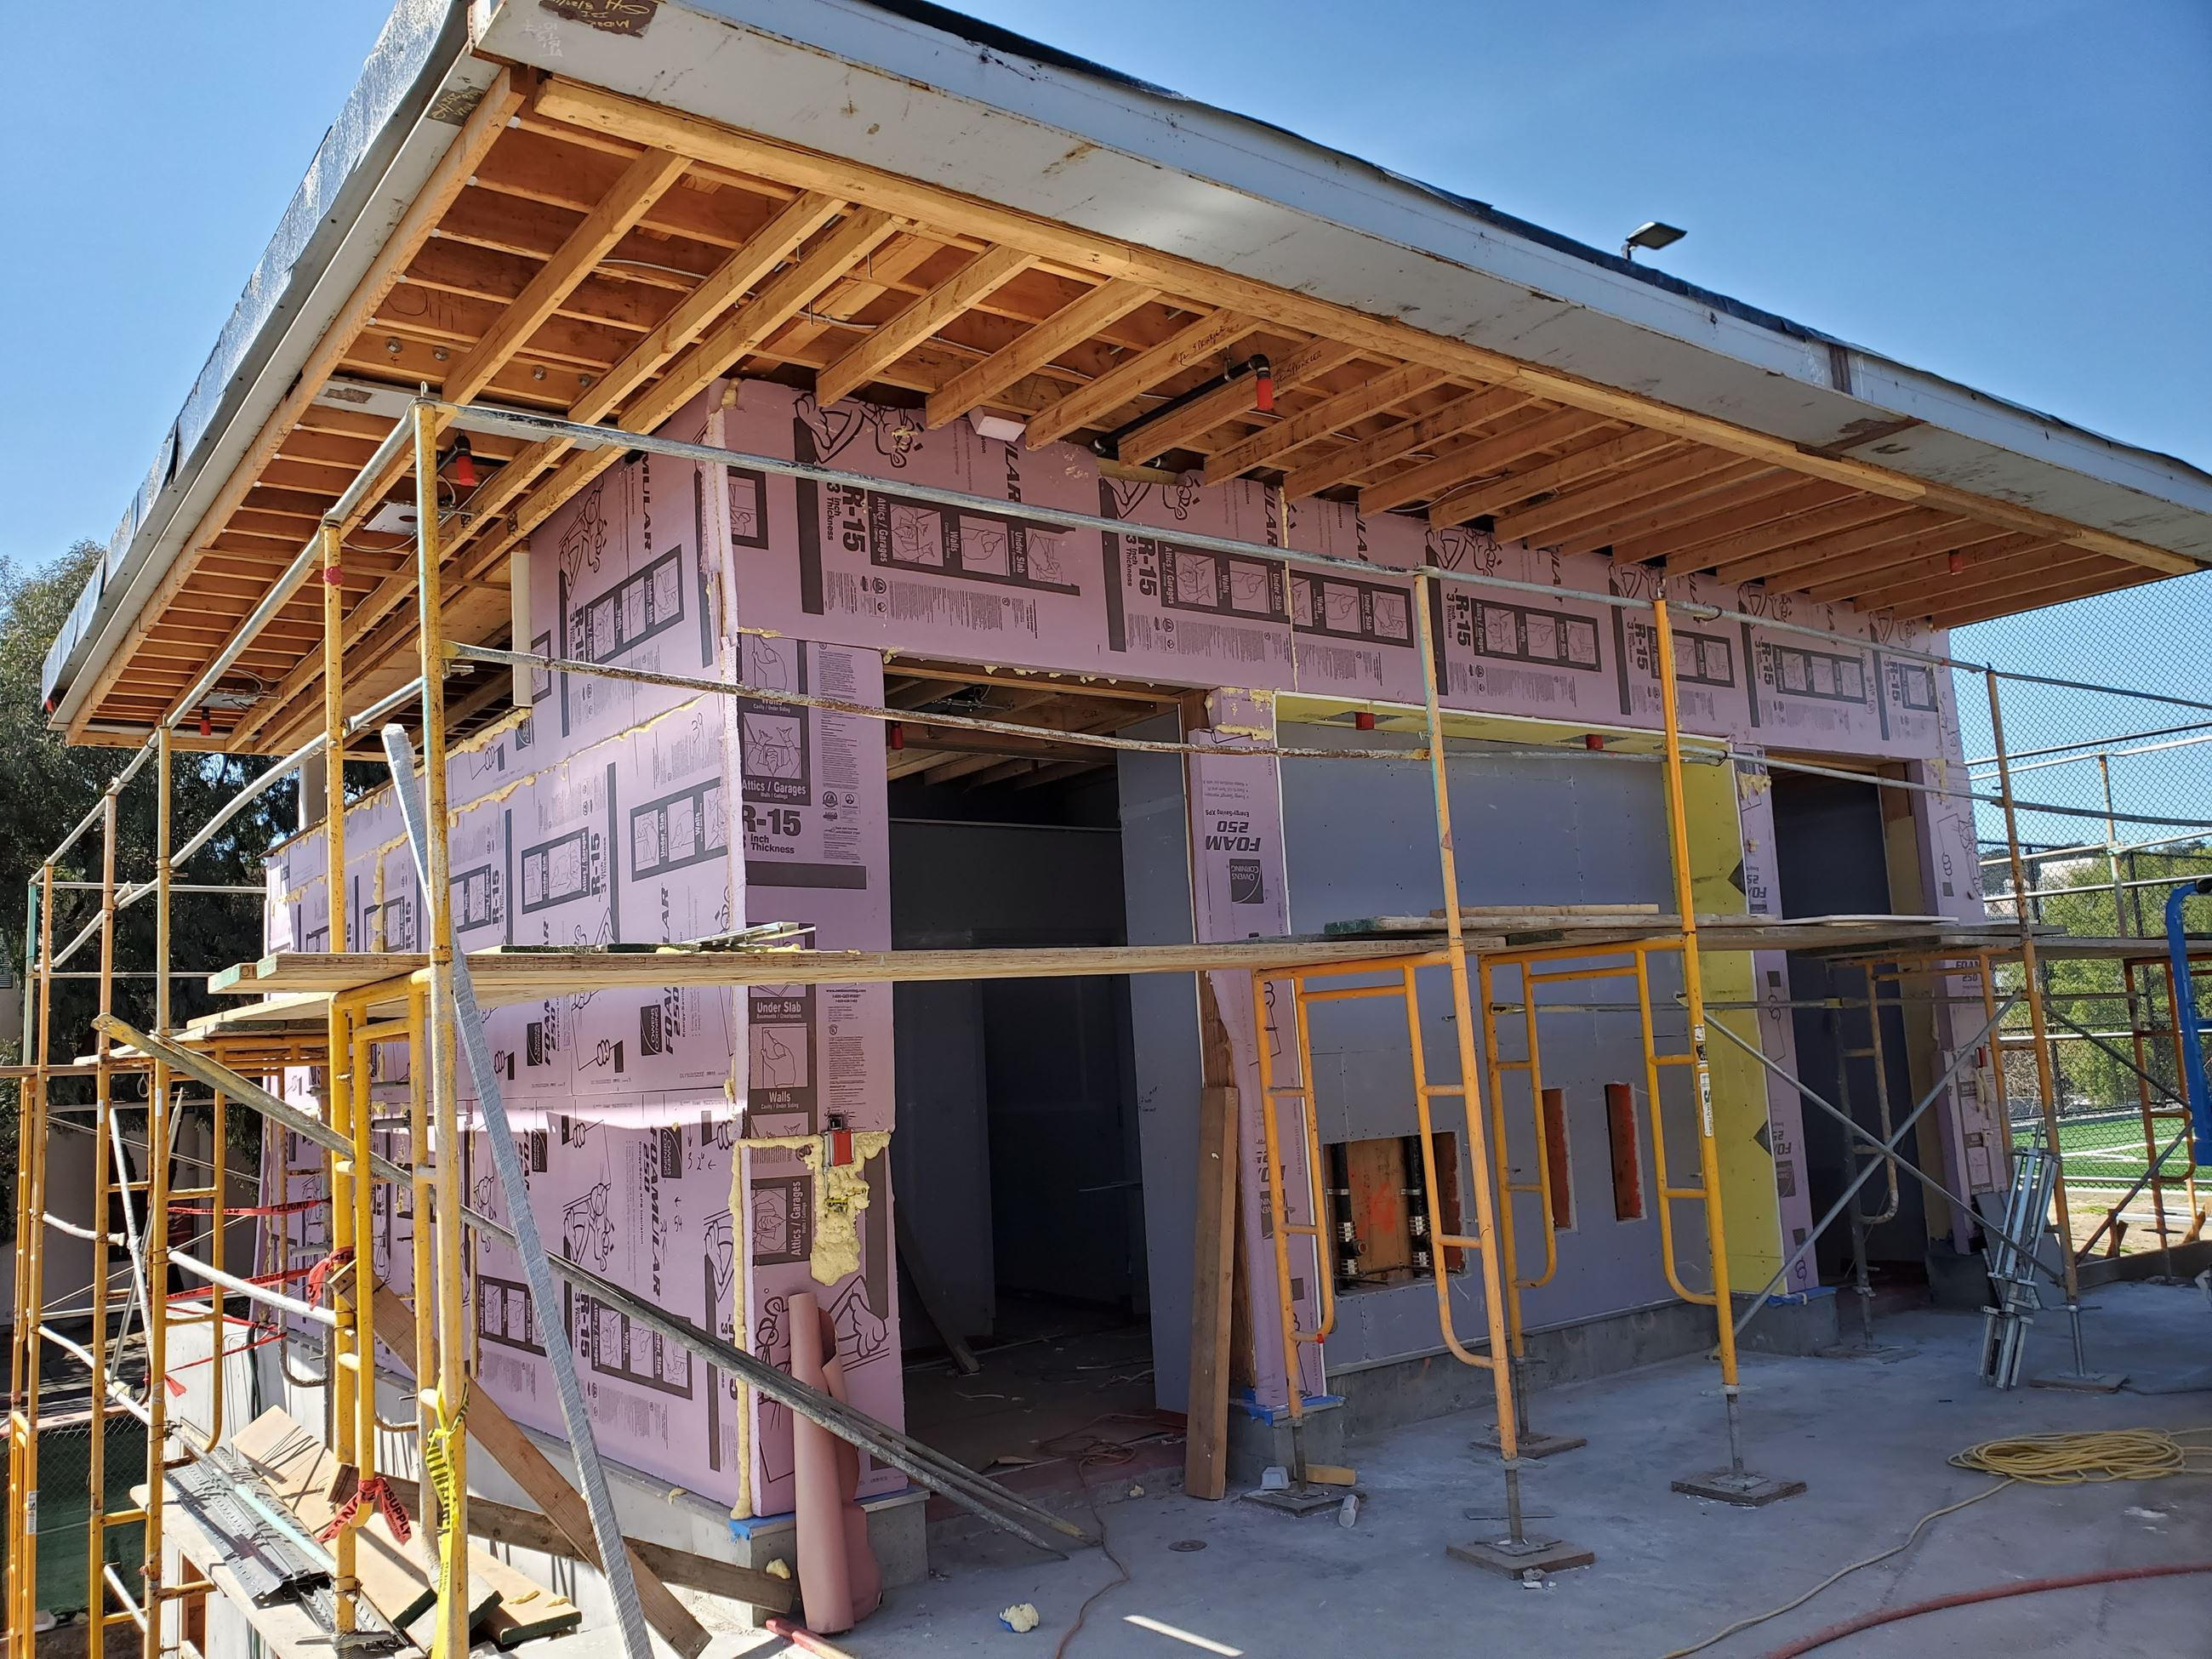 Photo is of the restroom being sealed with pink building wrap with scaffolding surrounding the struc